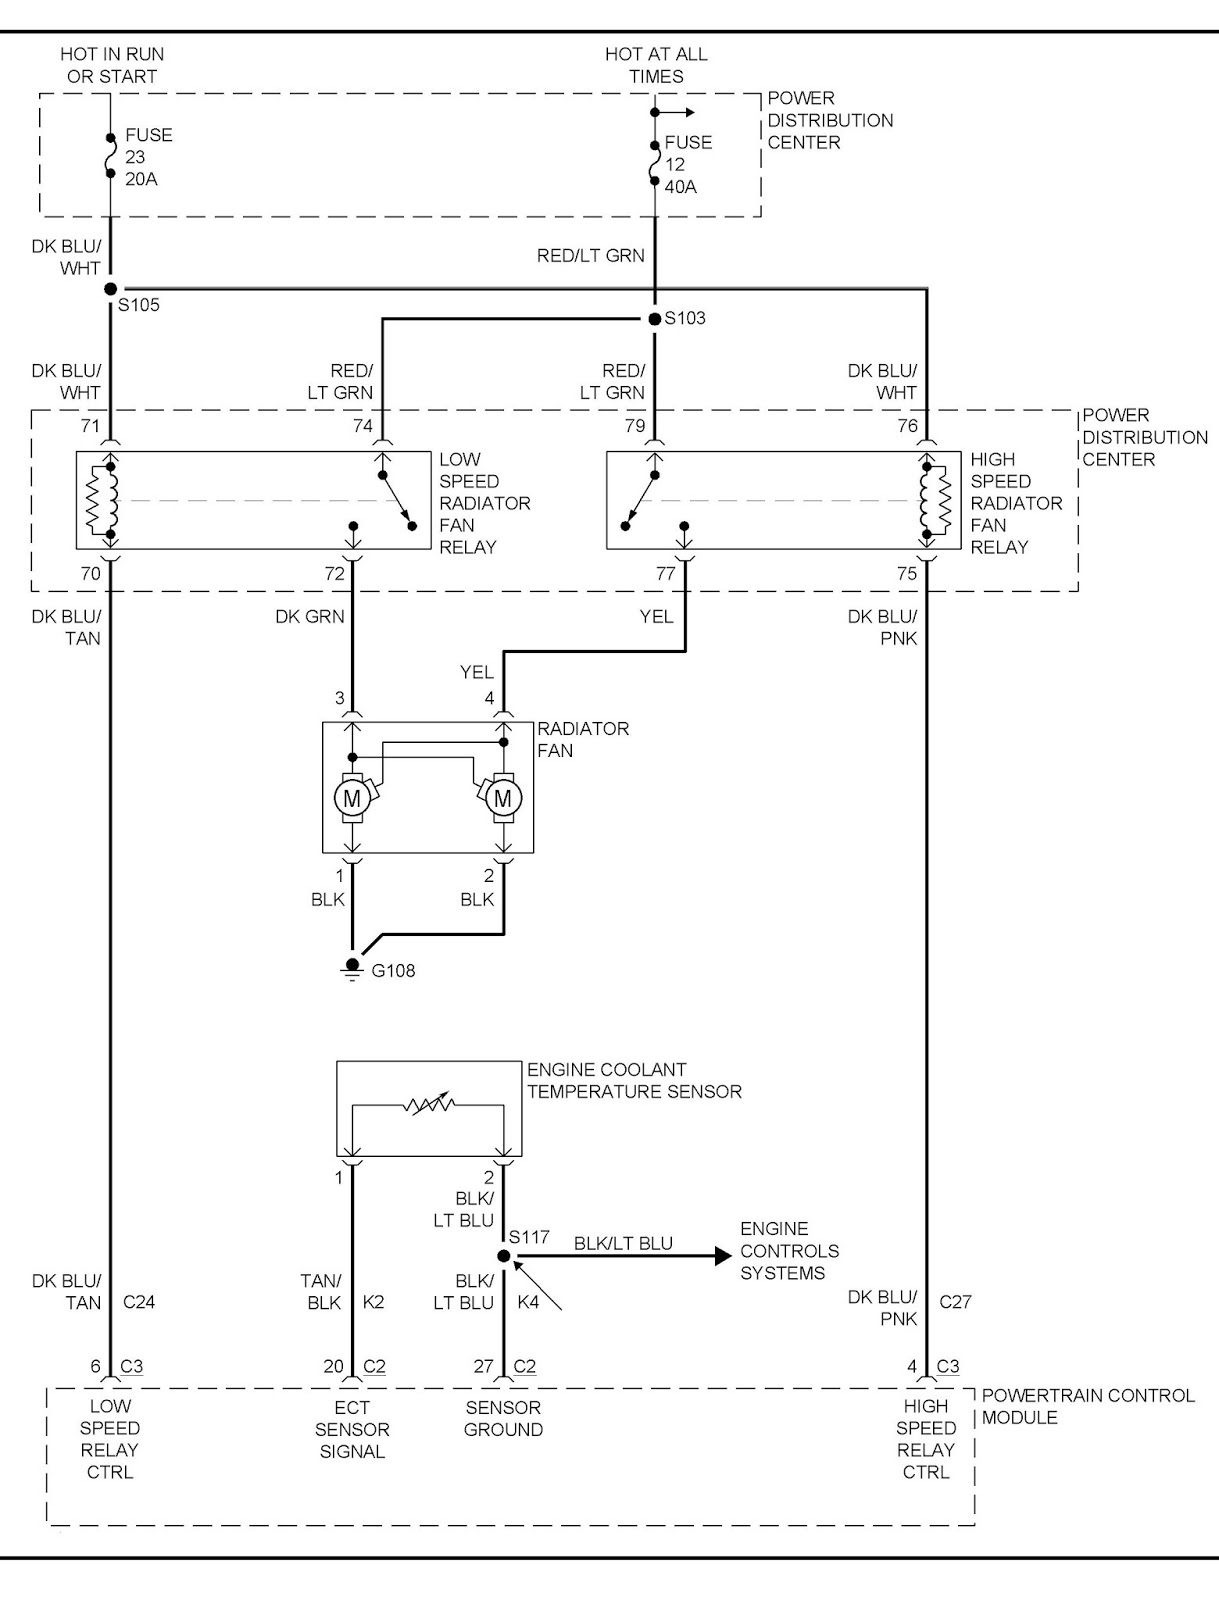 Delorean Wiring Diagrams Blog About Free S10 Diagram 2002 Camaro Cooling System Schematic Another 2000 Fuel Pump